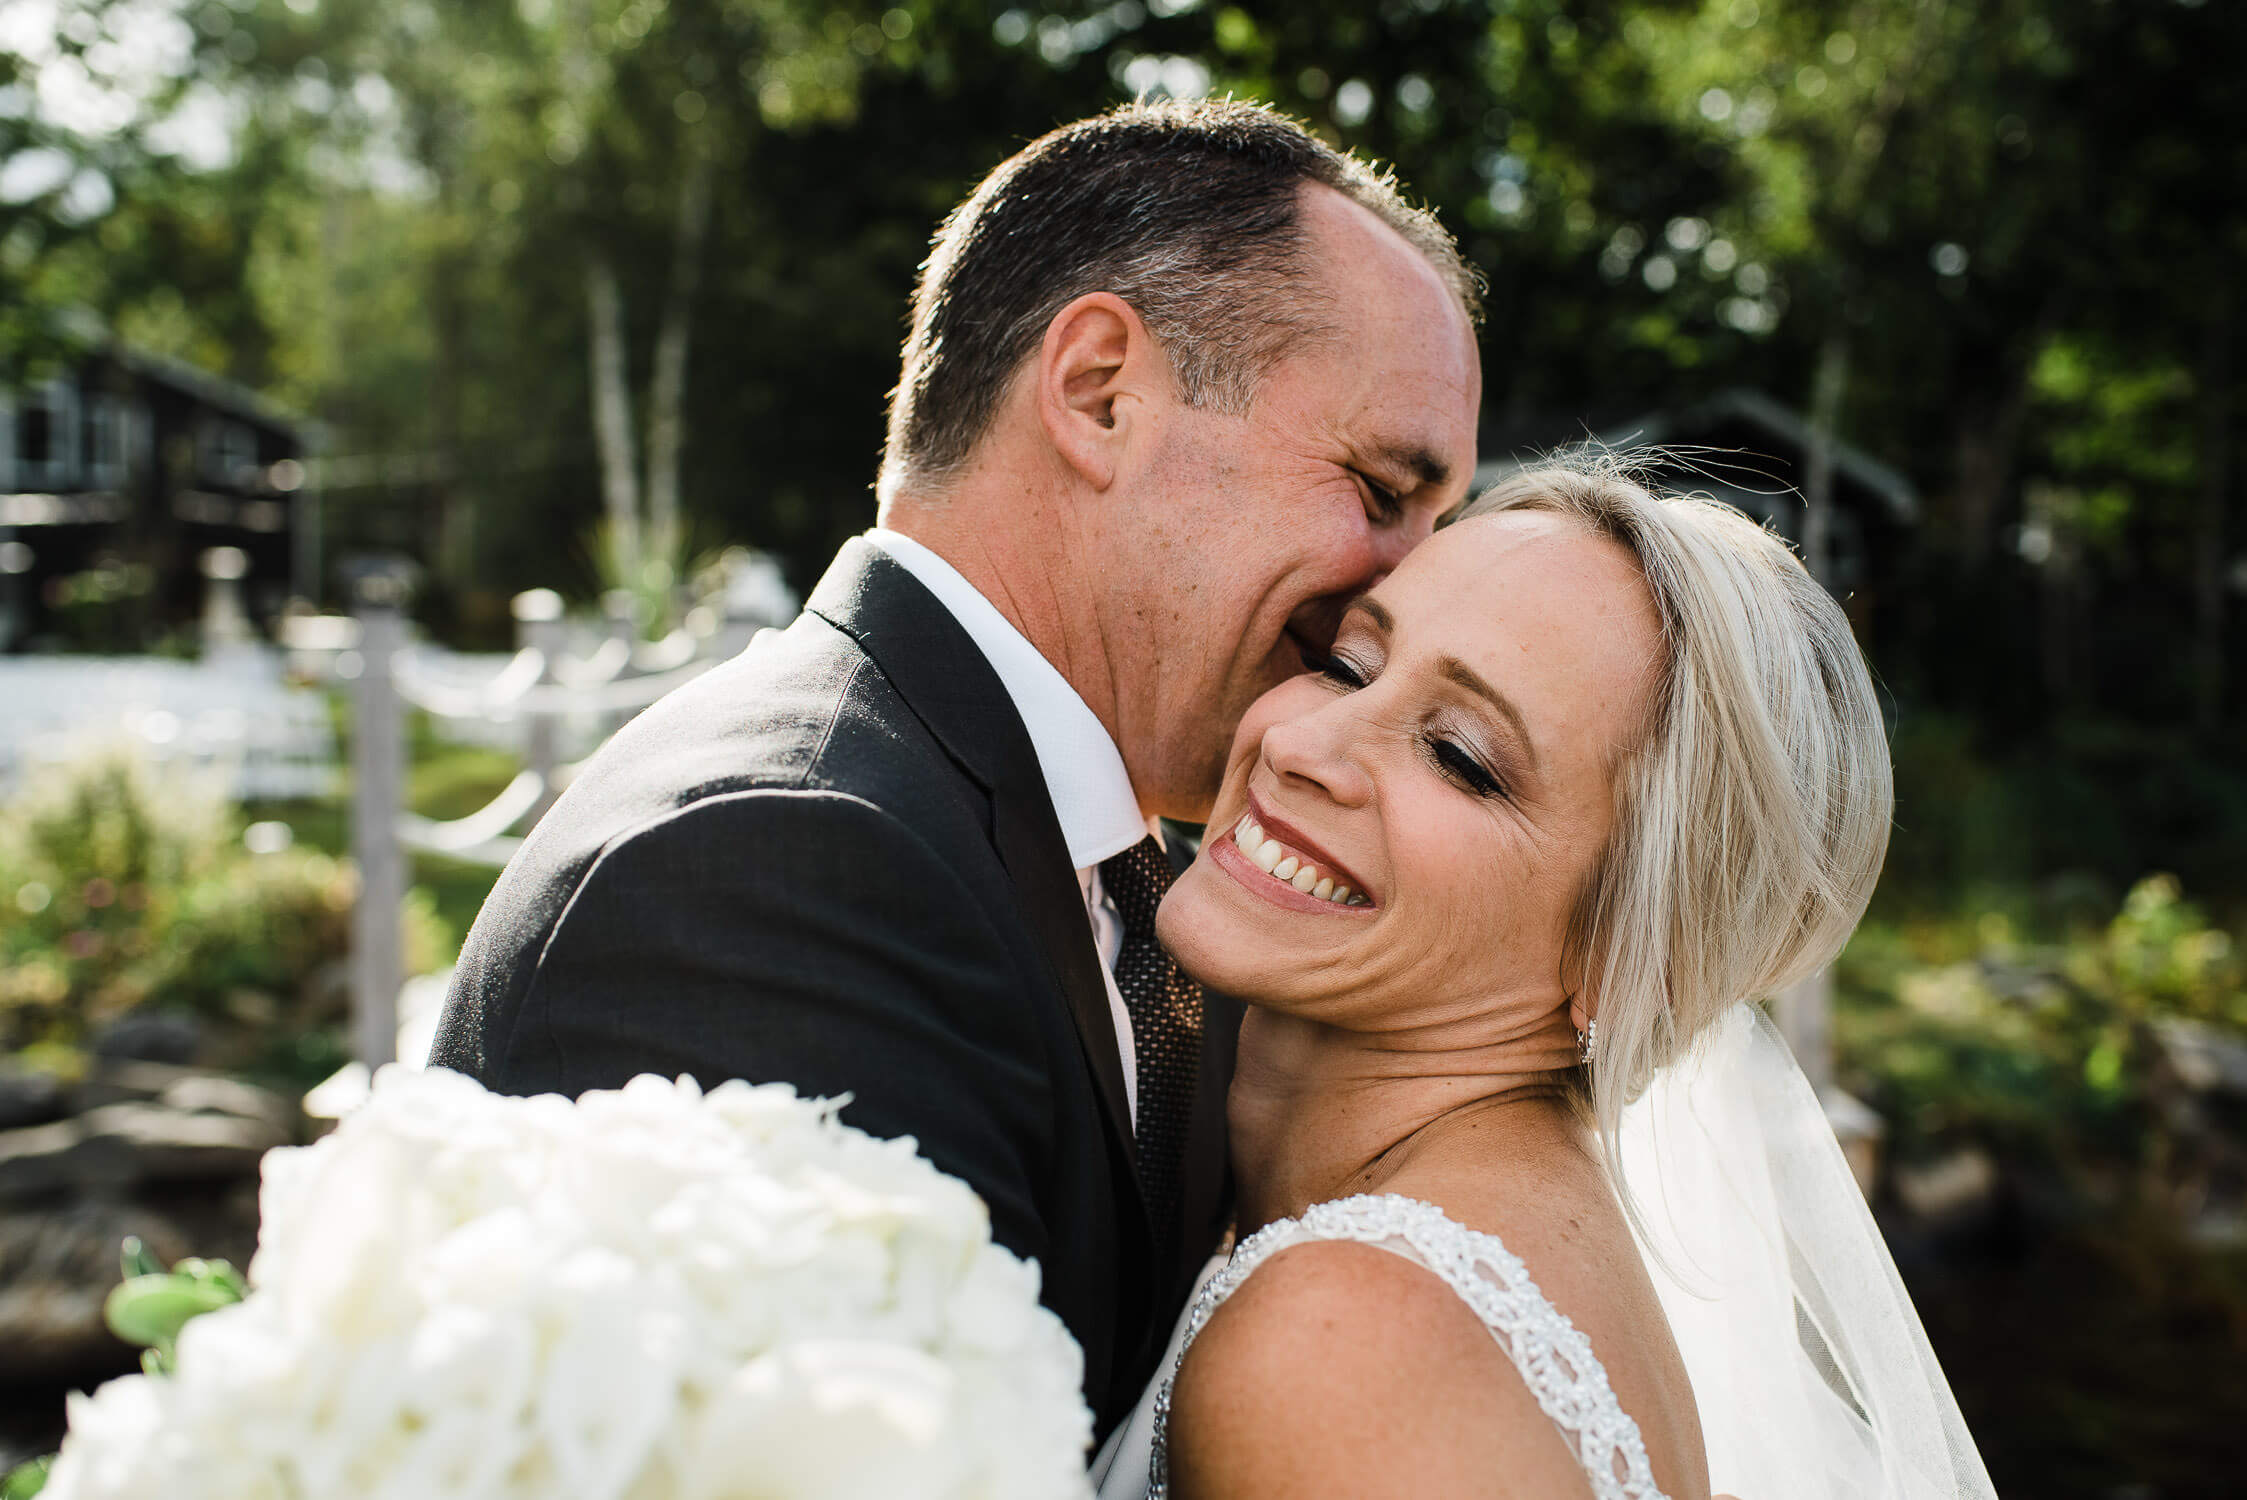 Newlyweds hugging and laughing on the dock of their lakefront home